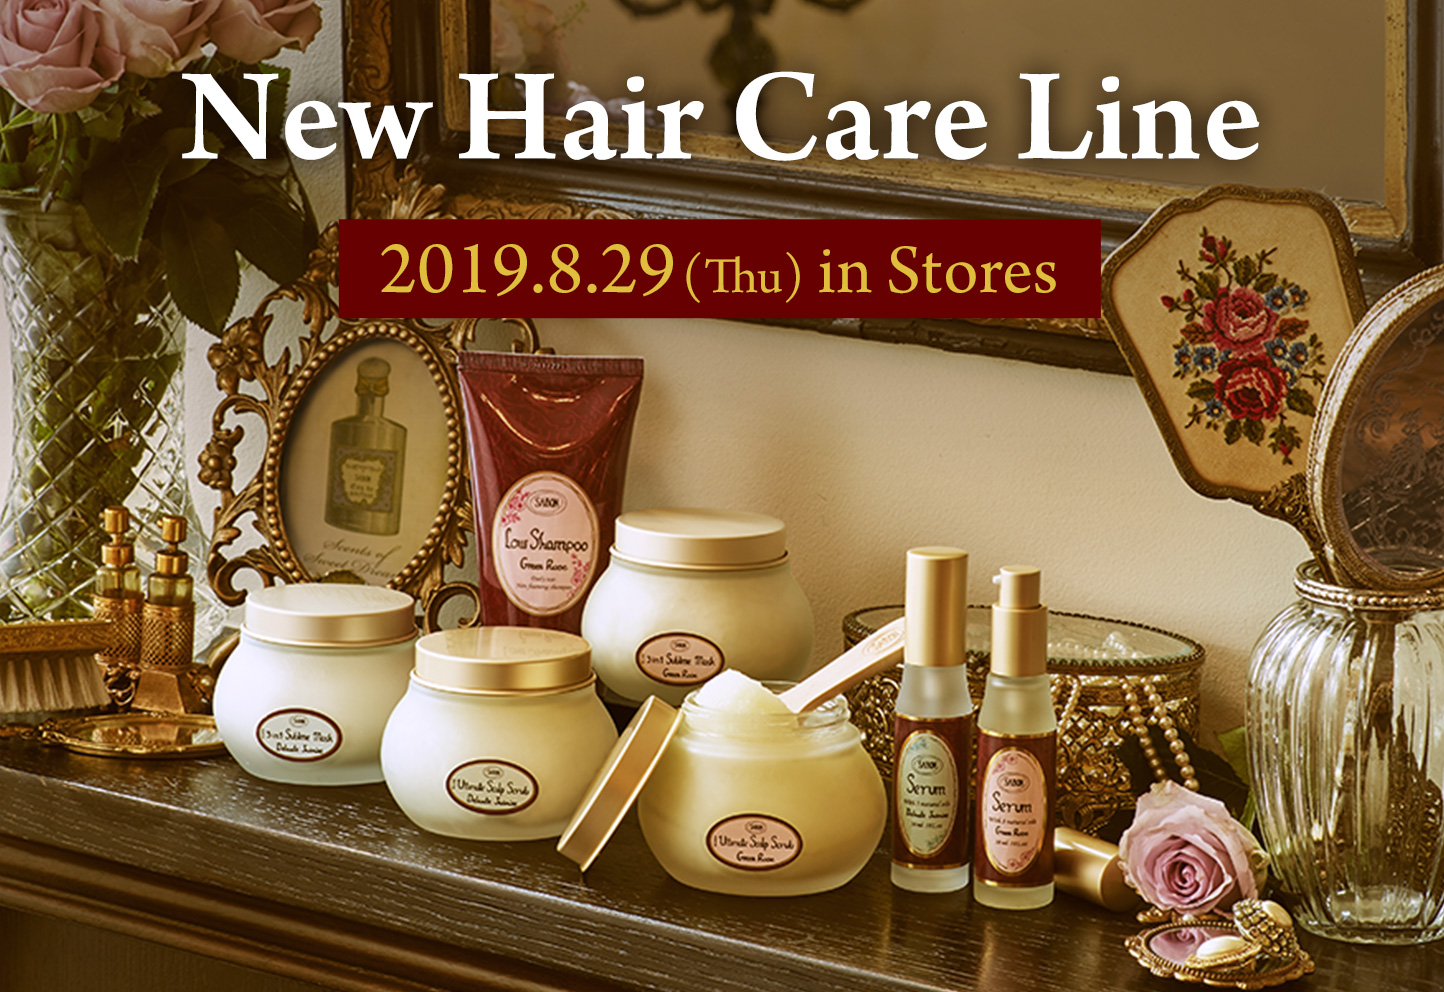 New Hair Care Line 2019.8.29 (Thu) in Stores